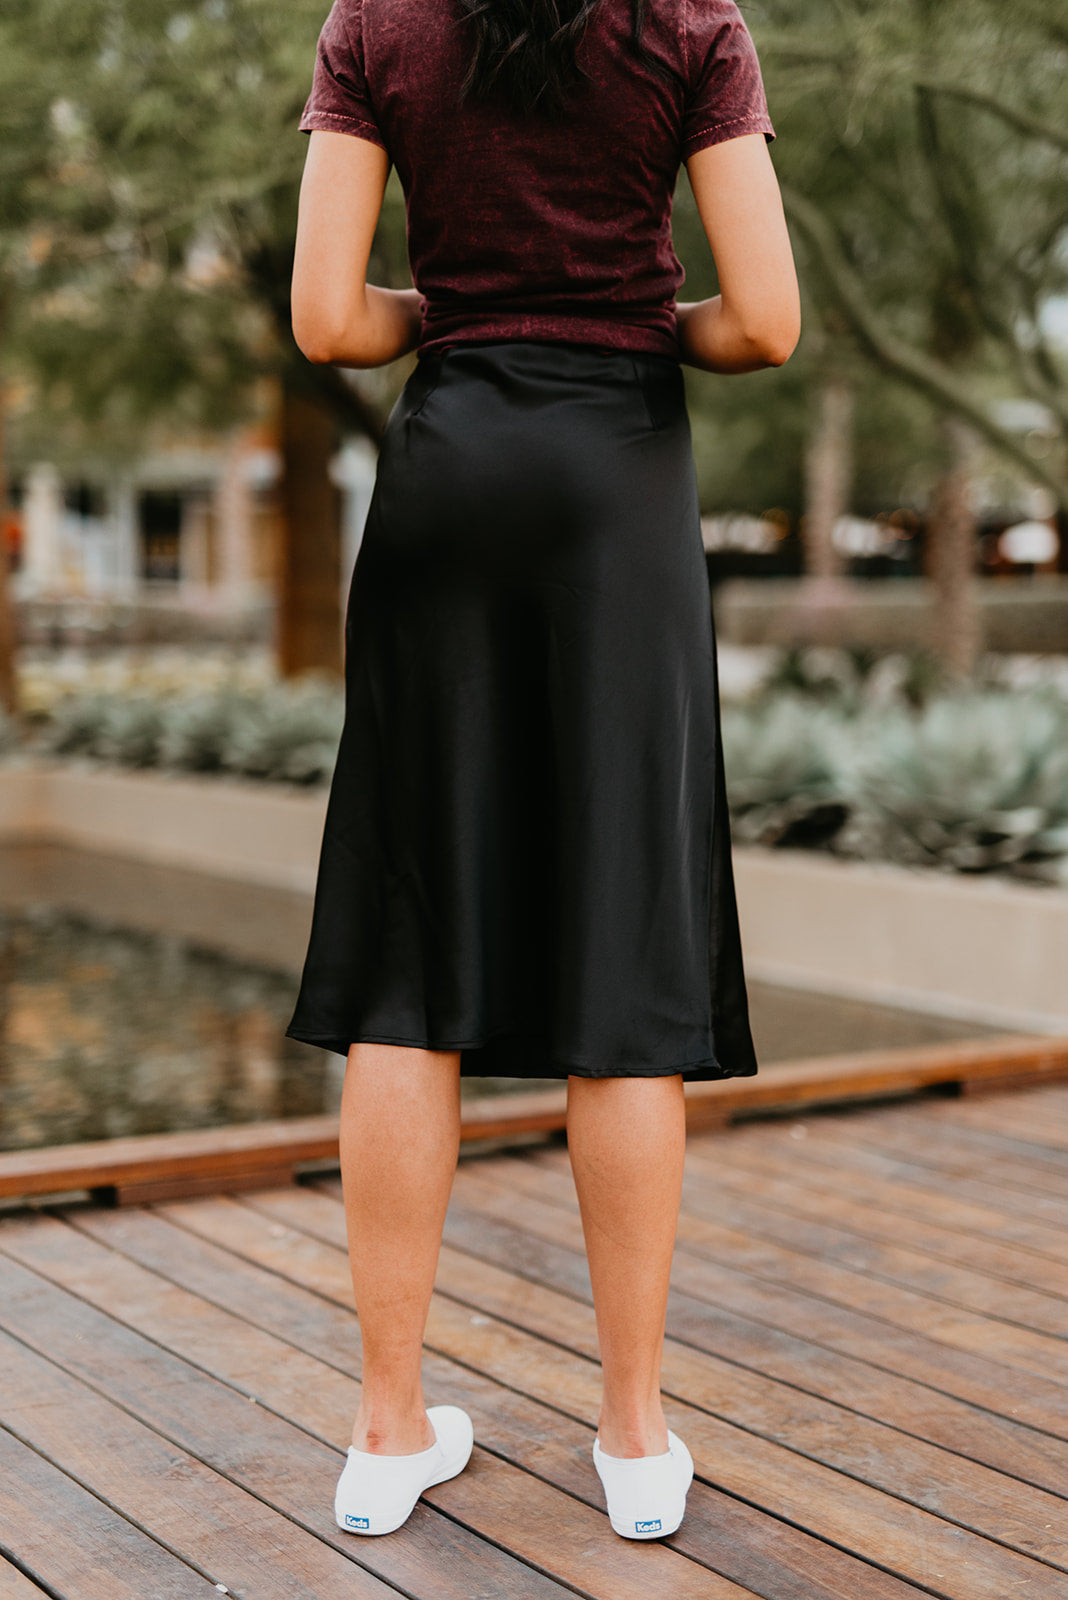 THE SABRINA SATIN MIDI SKIRT IN BLACK